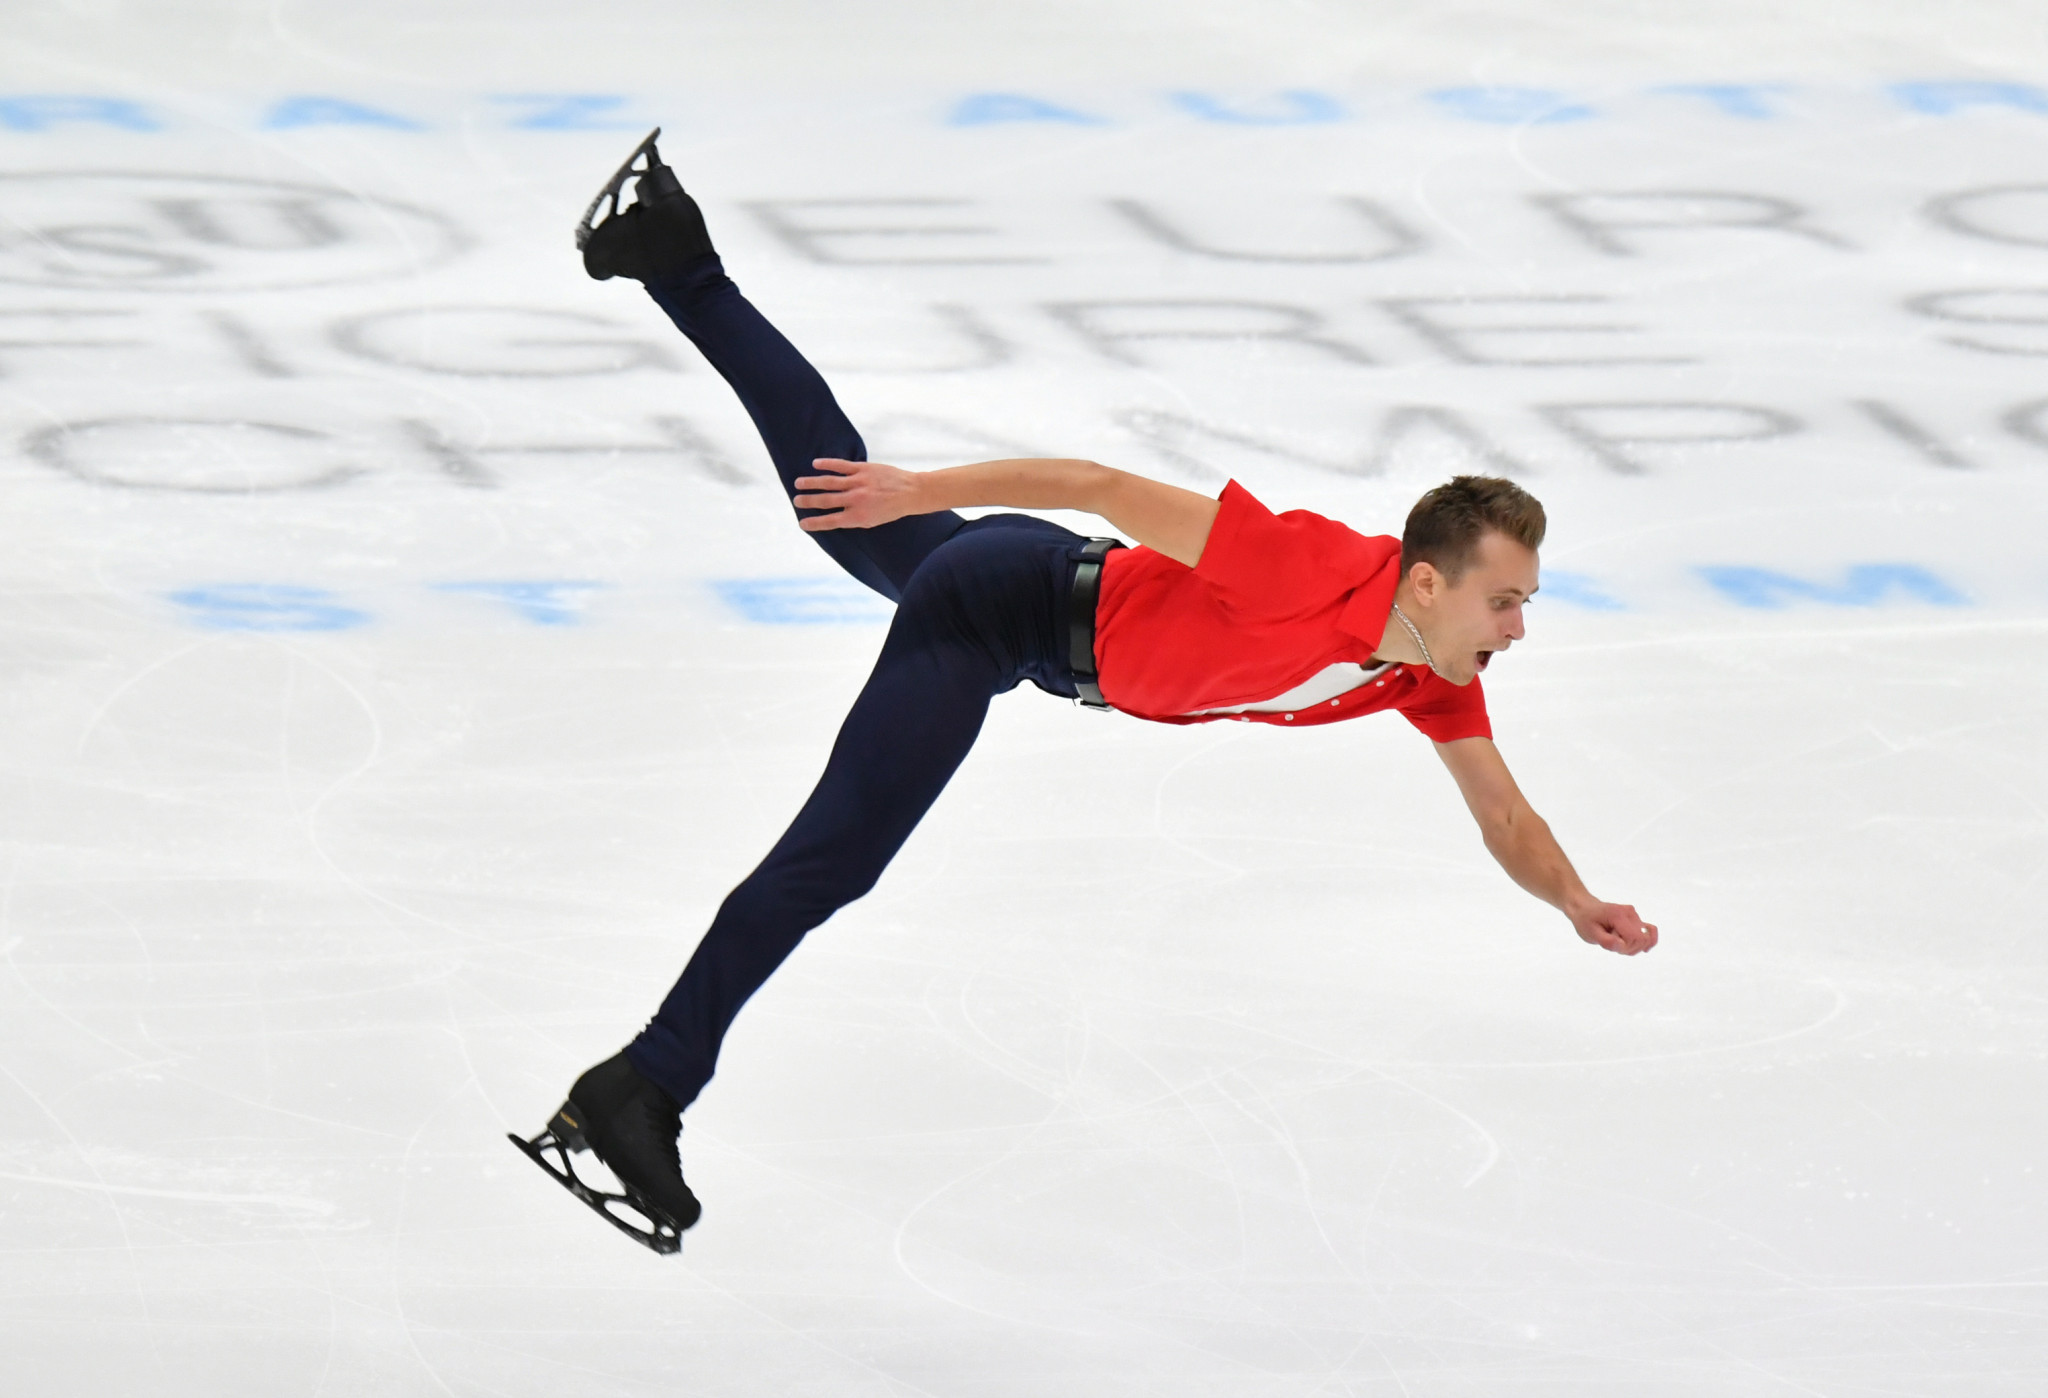 The Czech Republic's Michal Březina leads the men's singles at the ISU European Figure Skating Championships in Graz ©Getty Images